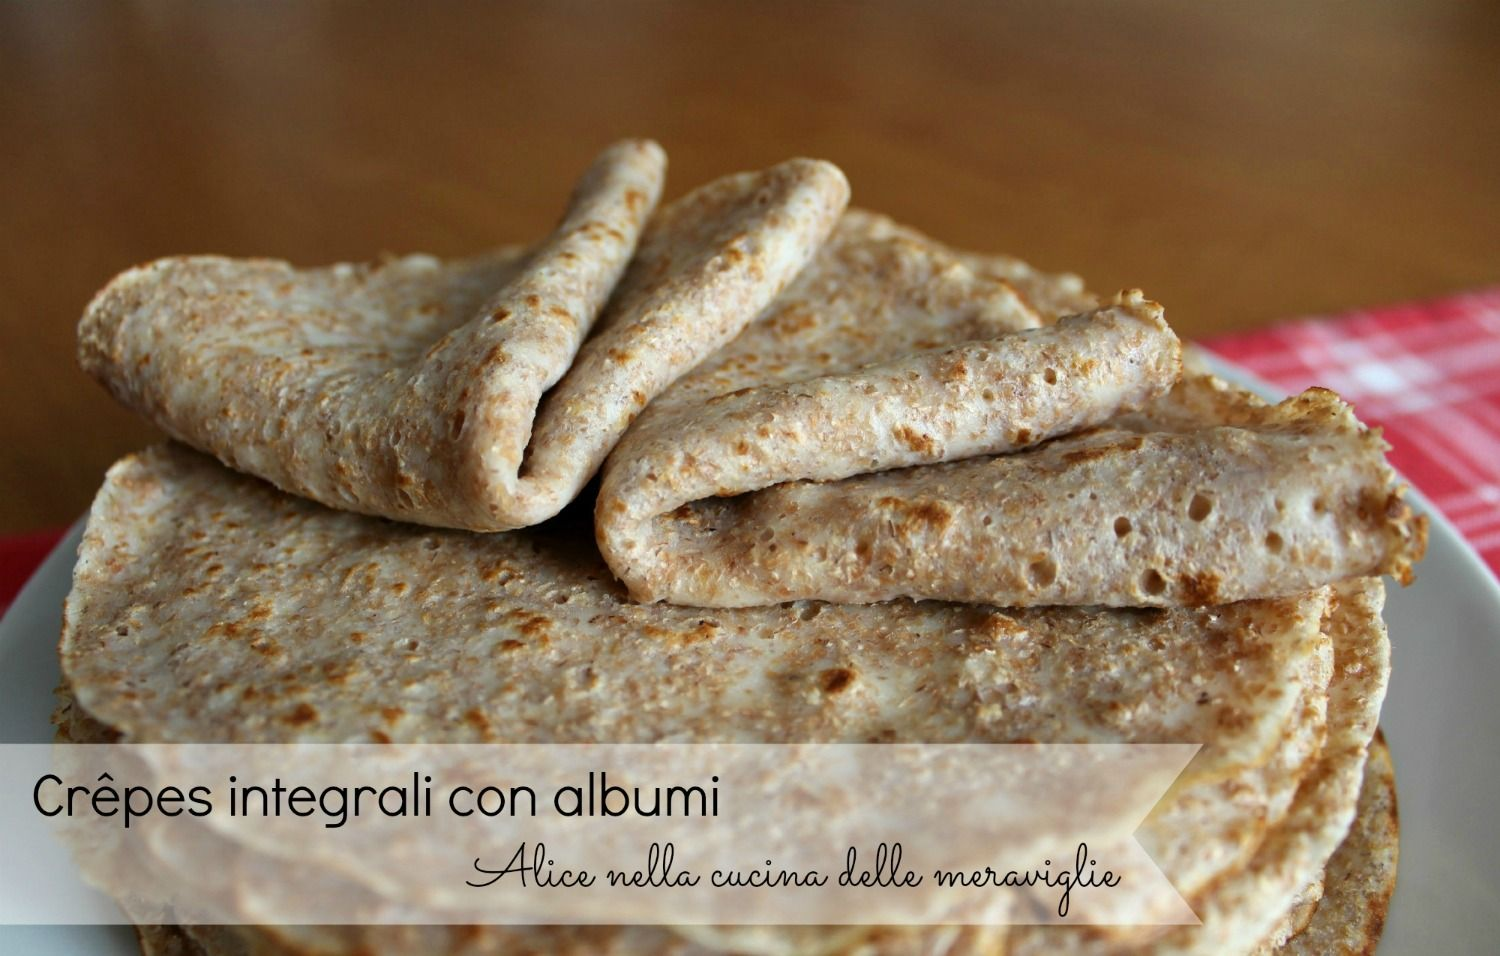 Crêpes integrali con albumi, ricetta light